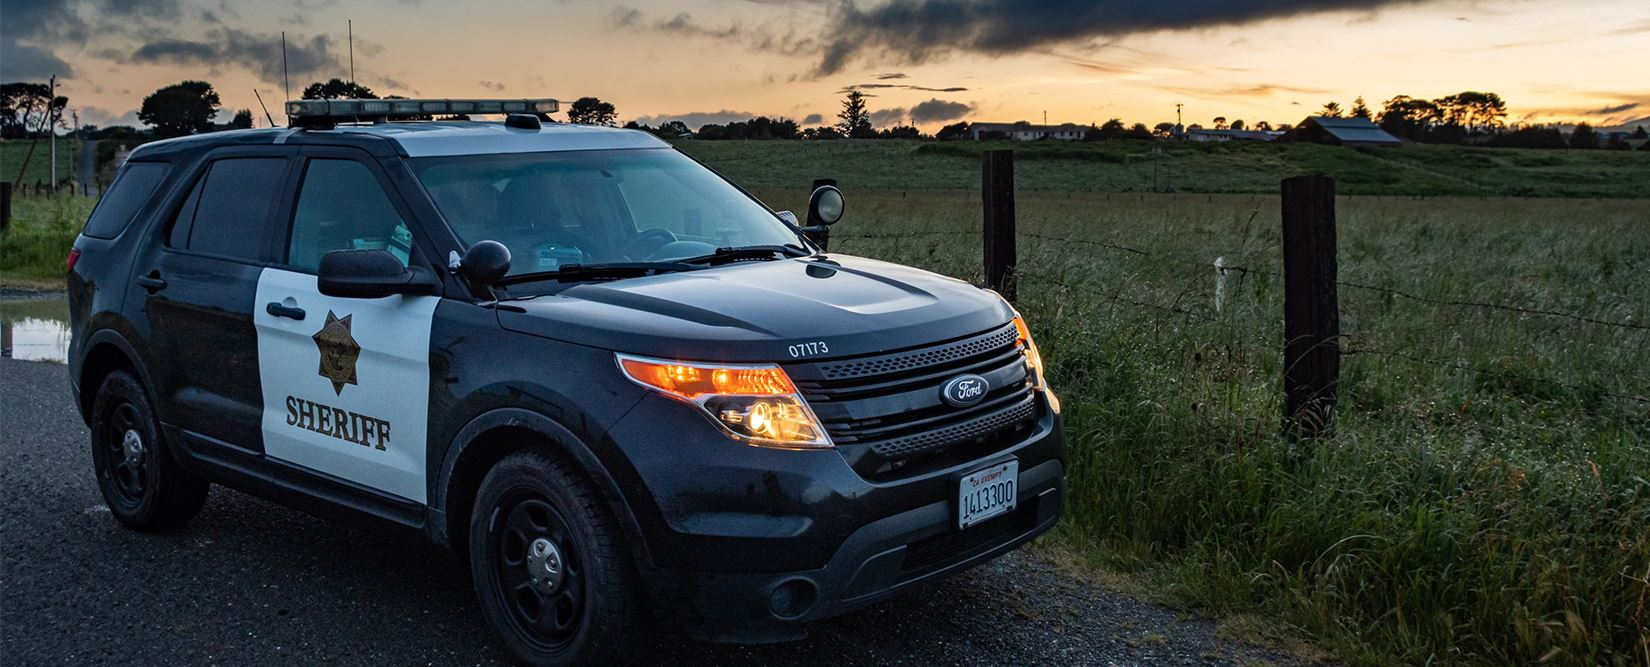 Sheriff's patrol car parked in front of a field during sunset